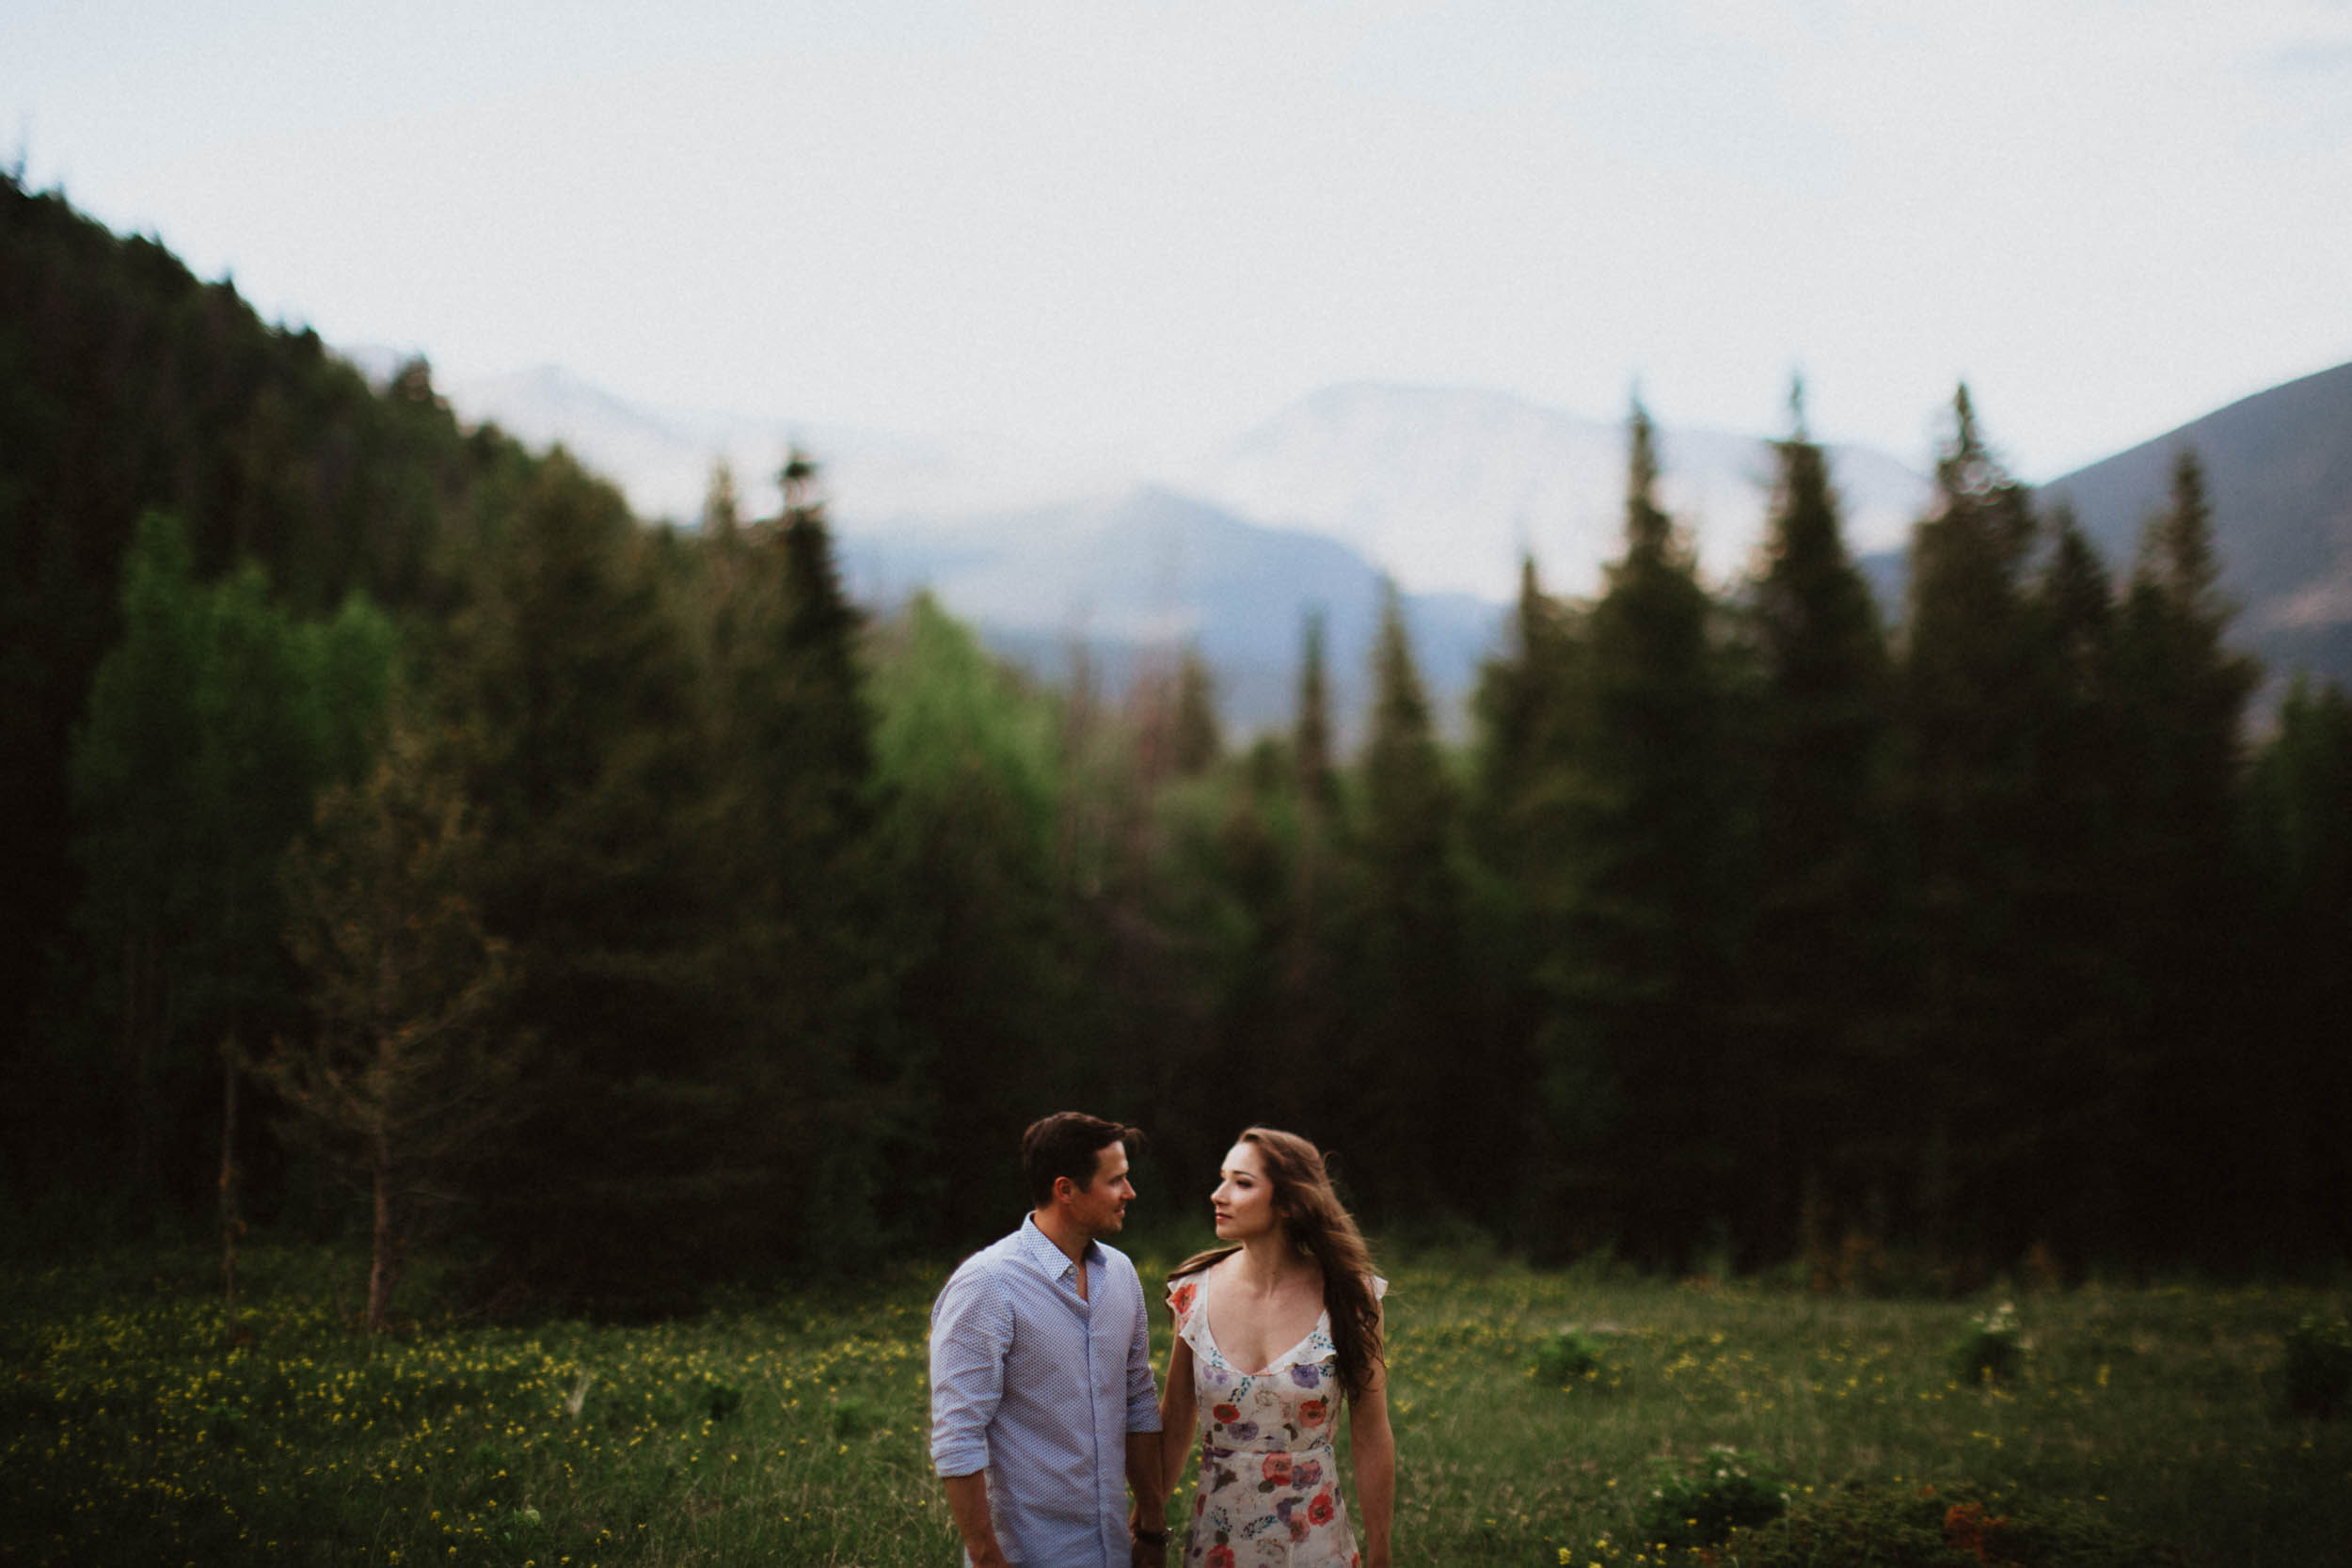 Rocky-Mountain-National-Park-Colorado-Engagement-018@2x.jpg